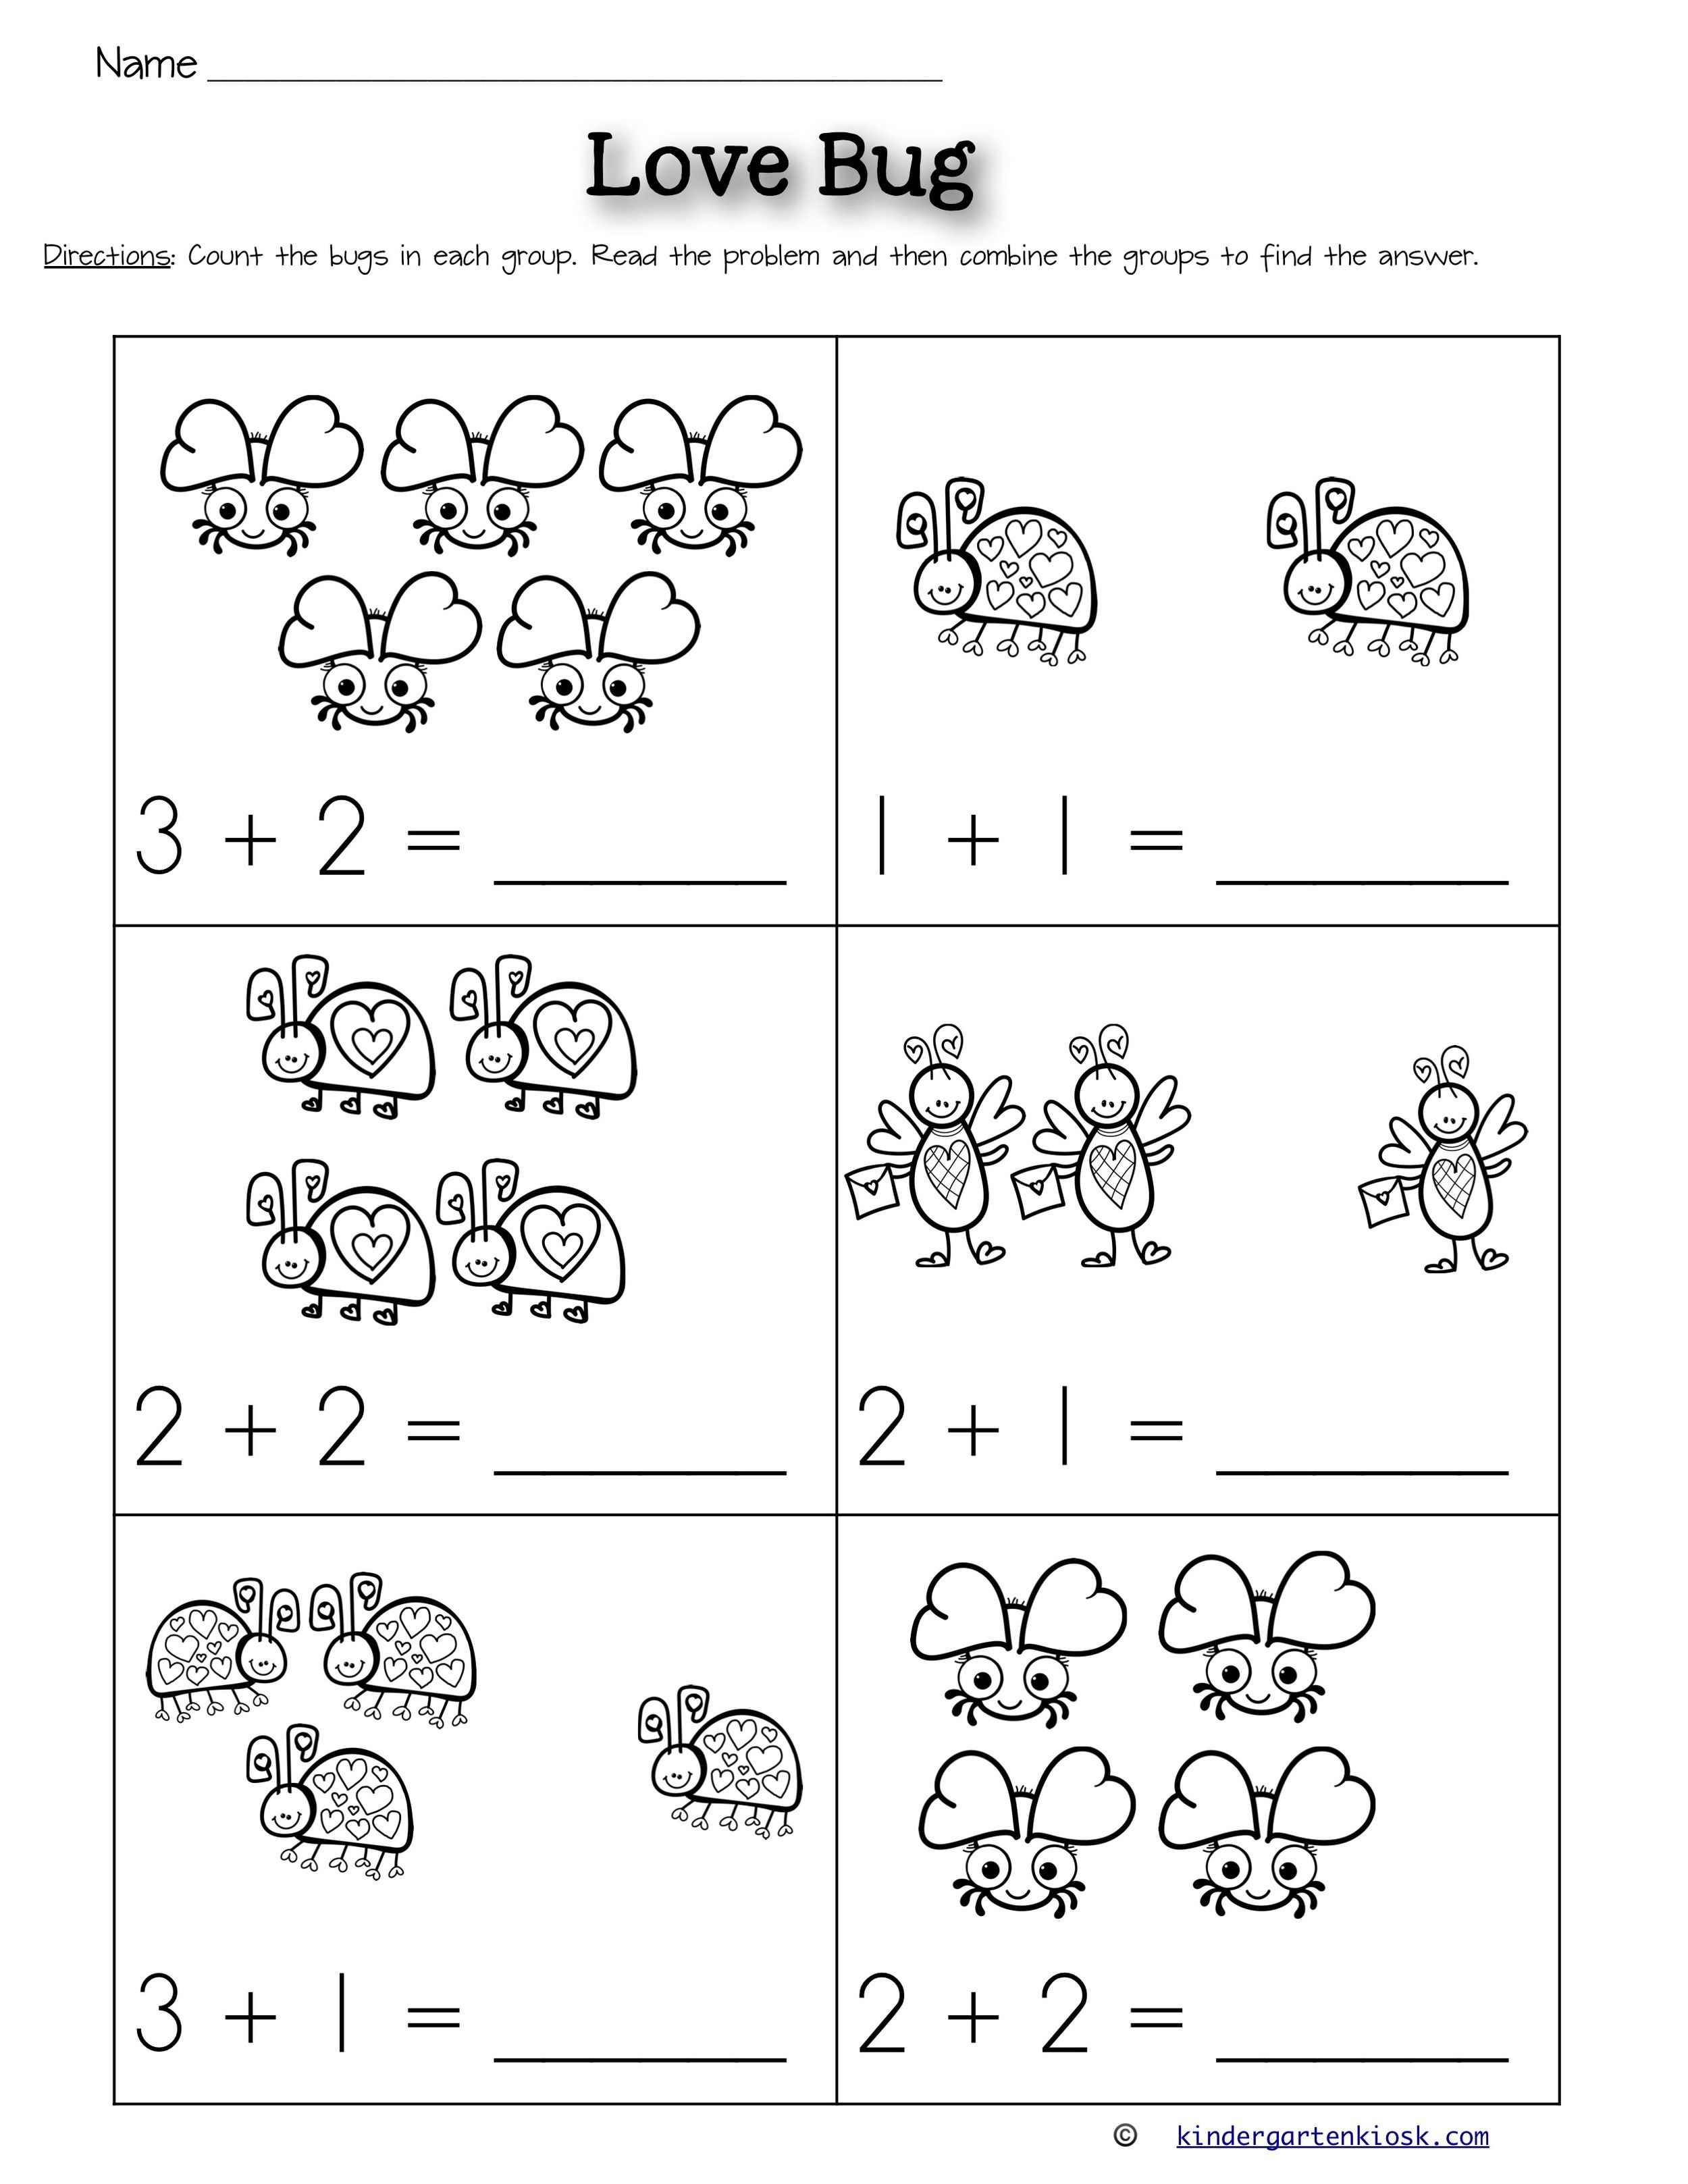 hight resolution of Addition 0-5 Worksheets: February — Kindergarten Kiosk   Kindergarten math worksheets  addition